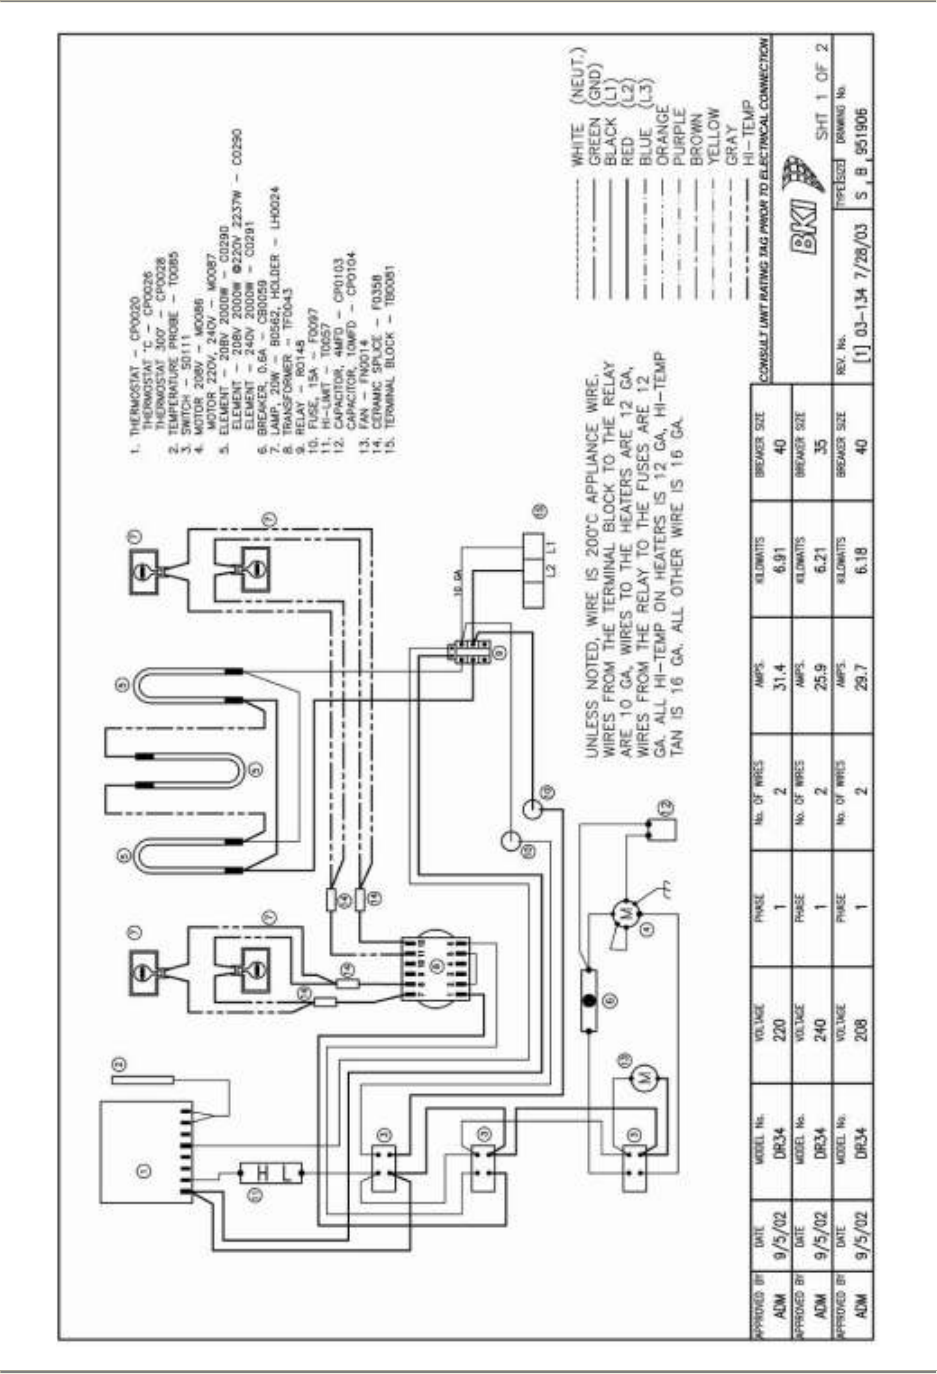 Dr34sm Double Revolving Oven Dr 34 Bki Dr34 Spm Rack Wiring Diagram Aps Diagrams